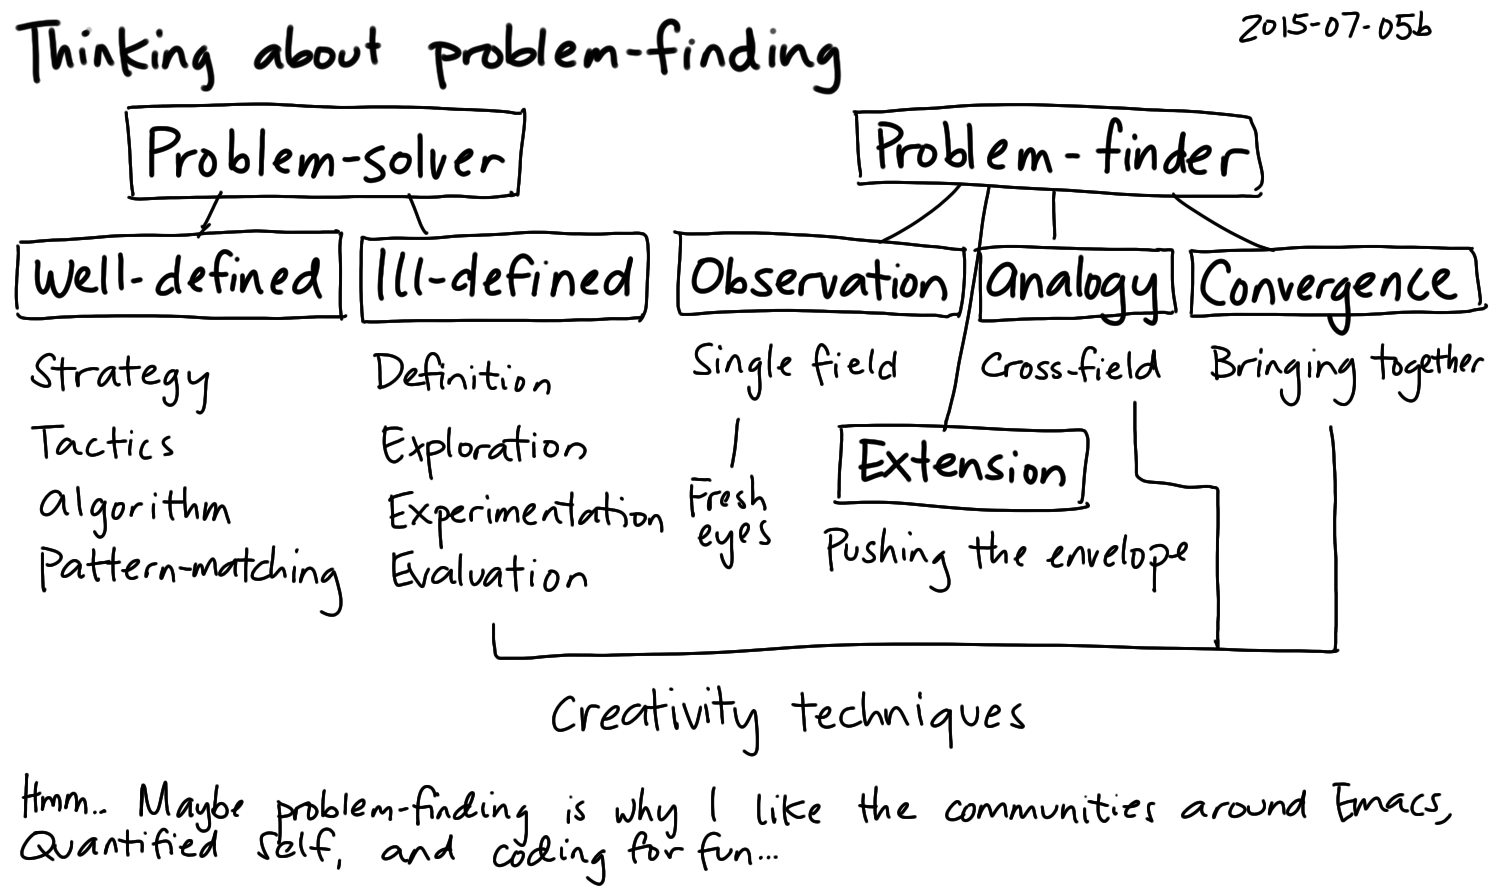 2015-07-05b Thinking about problem-finding -- index card #problem-solving #problem-finding.png